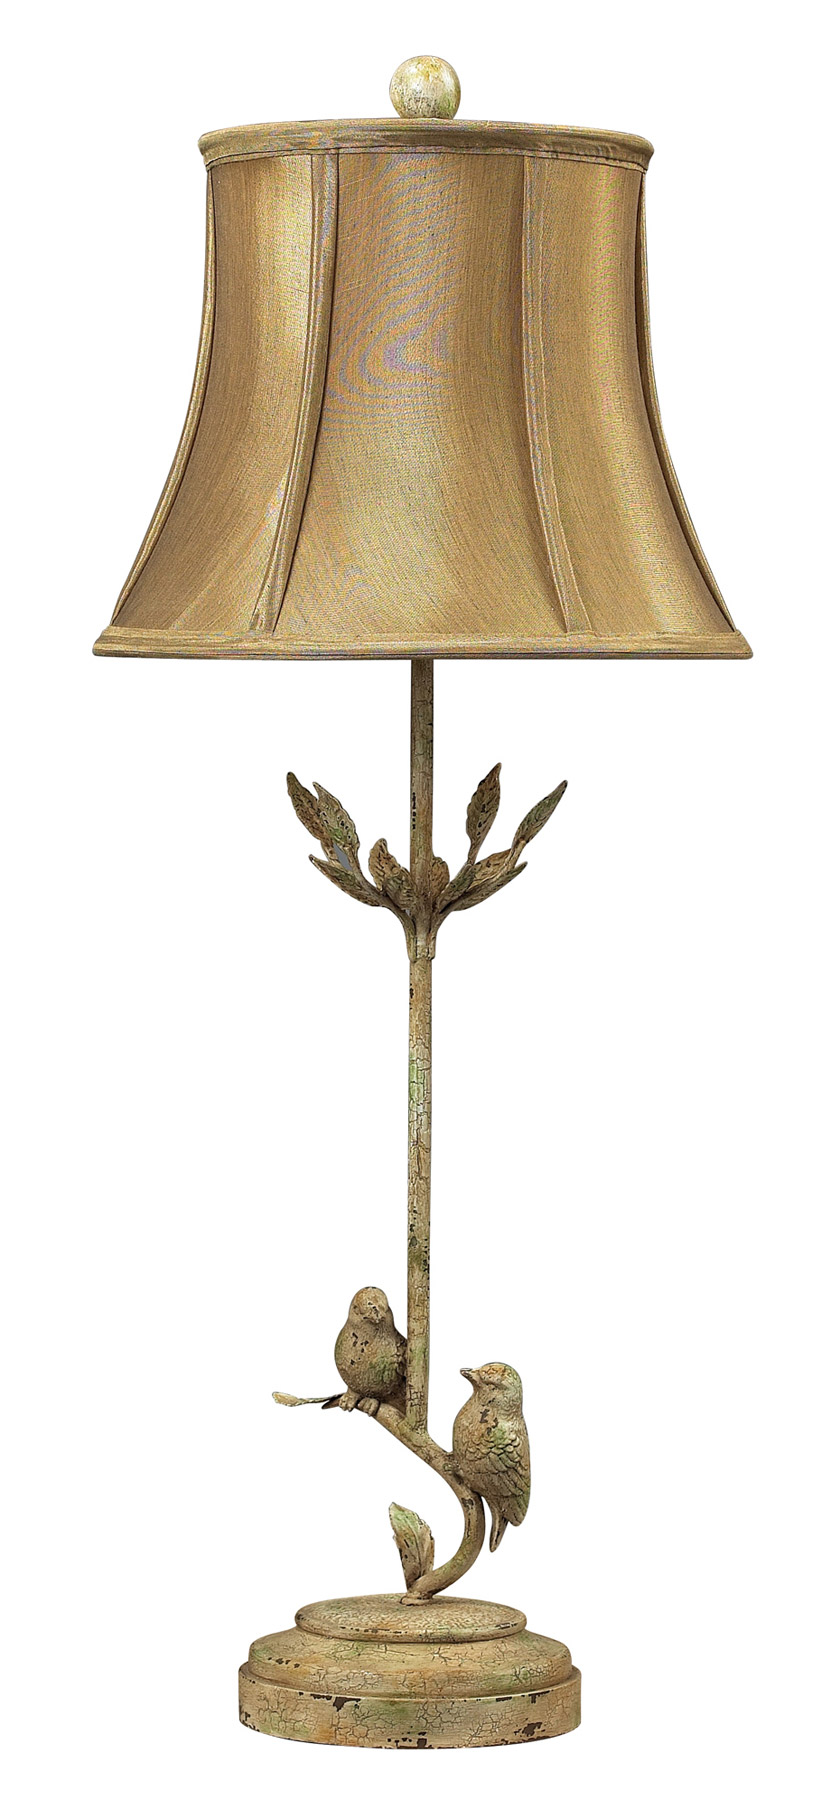 Dimond 93 9159 Ashbury Buffet Lamp